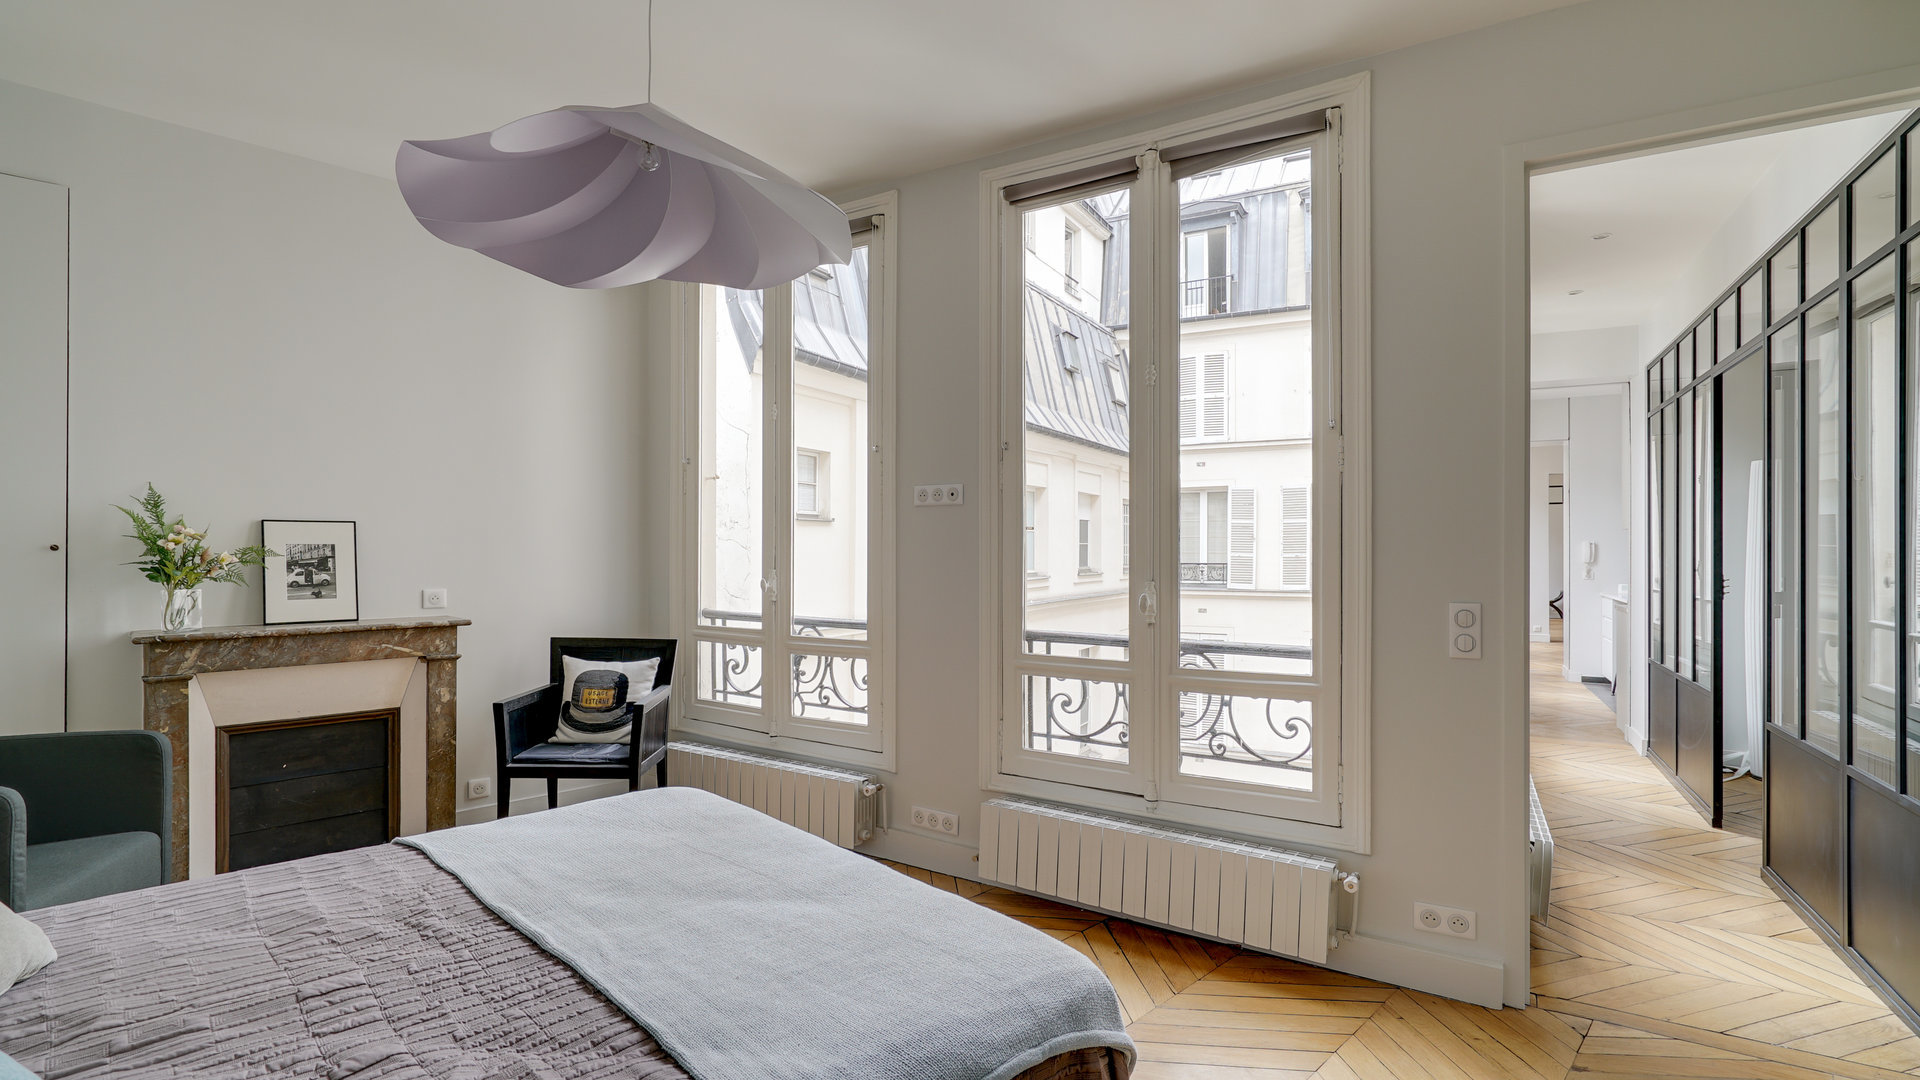 Sale Apartment - Paris 6th (Paris 6ème)